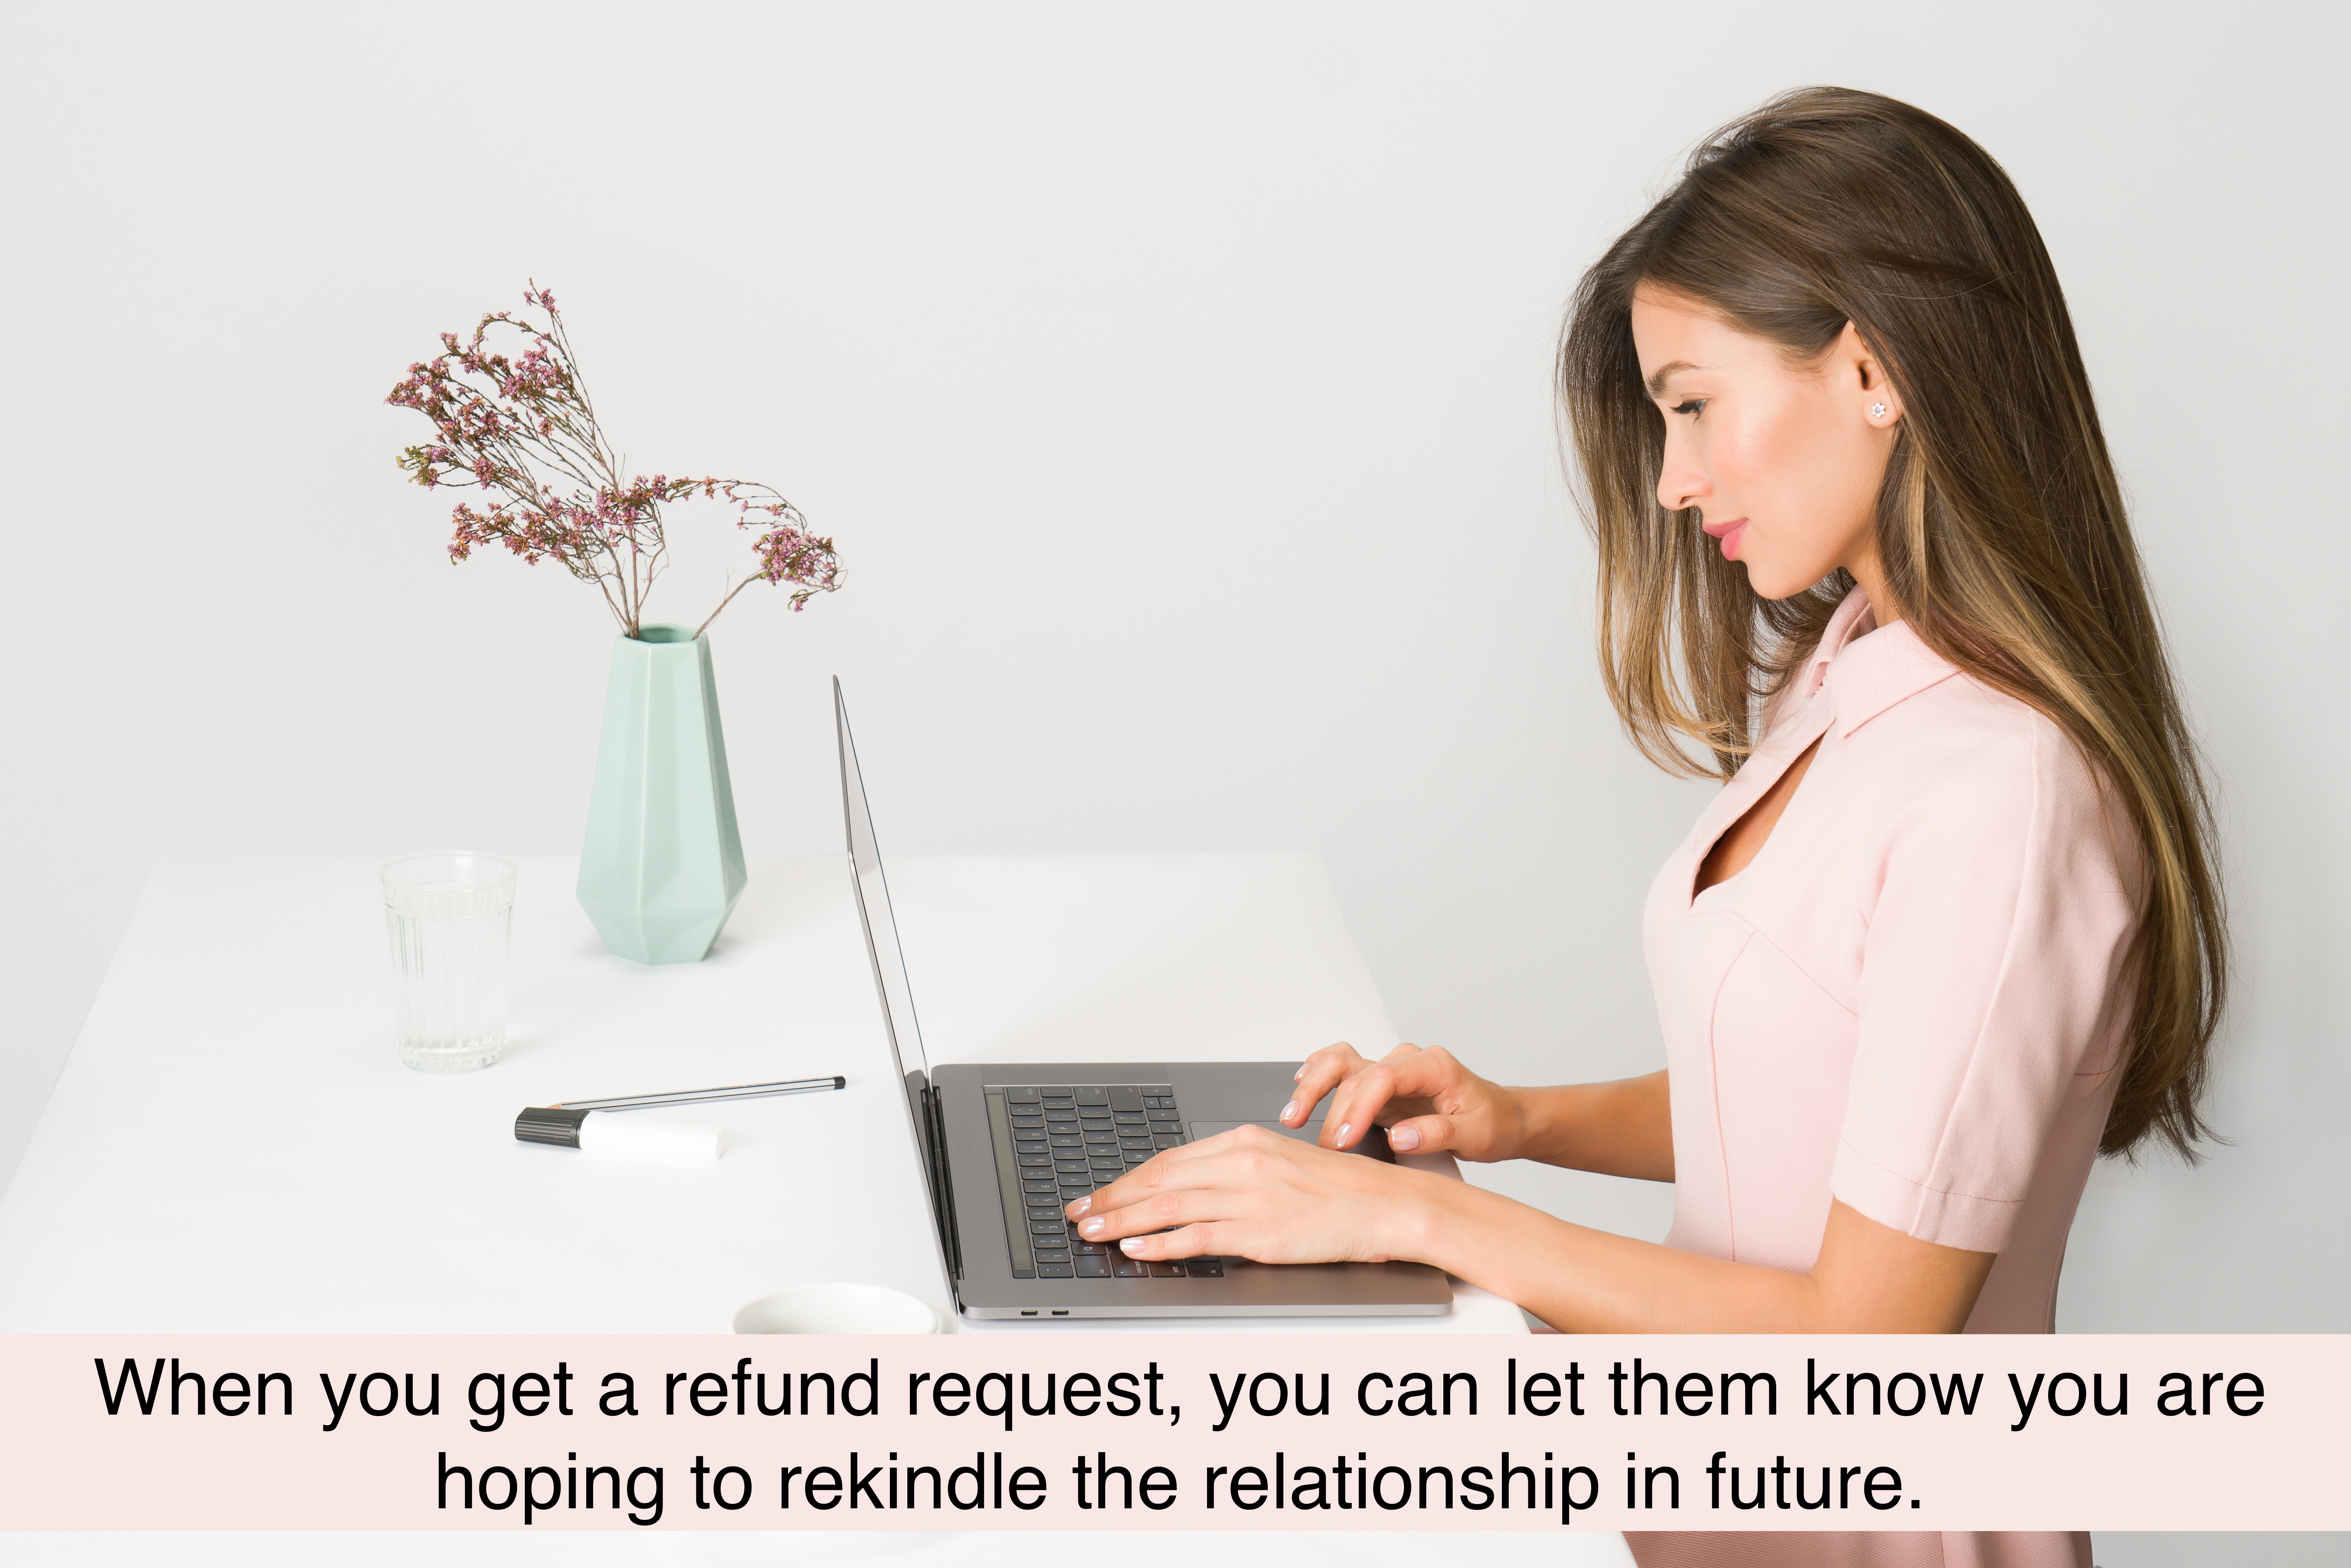 When you get a refund request, you can let them know you are hoping to rekindle the relationship in future.